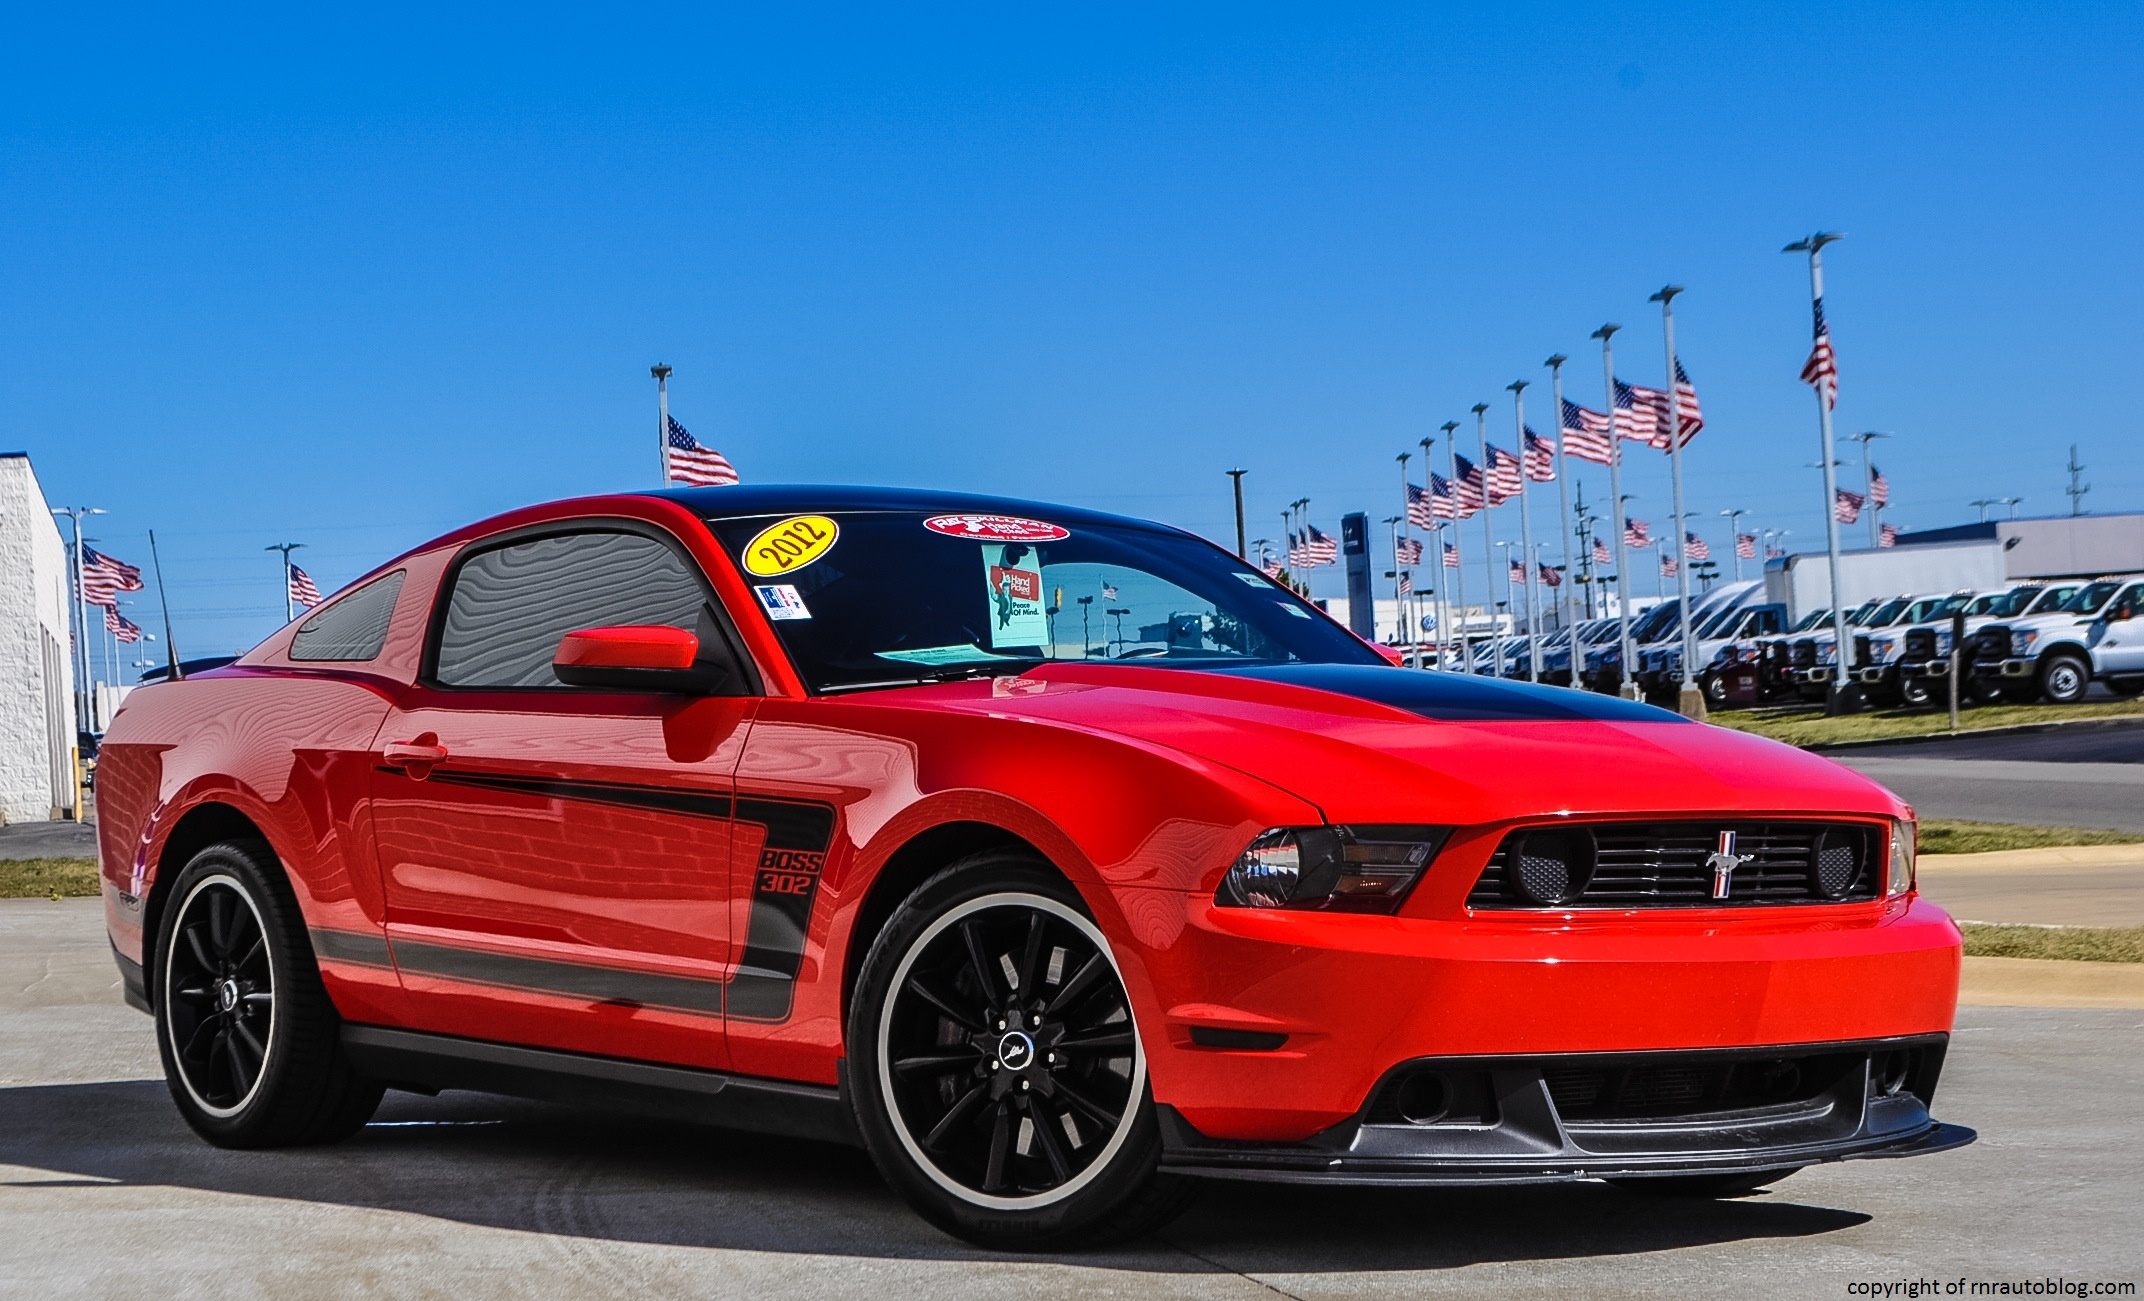 2012 ford mustang boss 302 review rnr automotive blog. Black Bedroom Furniture Sets. Home Design Ideas